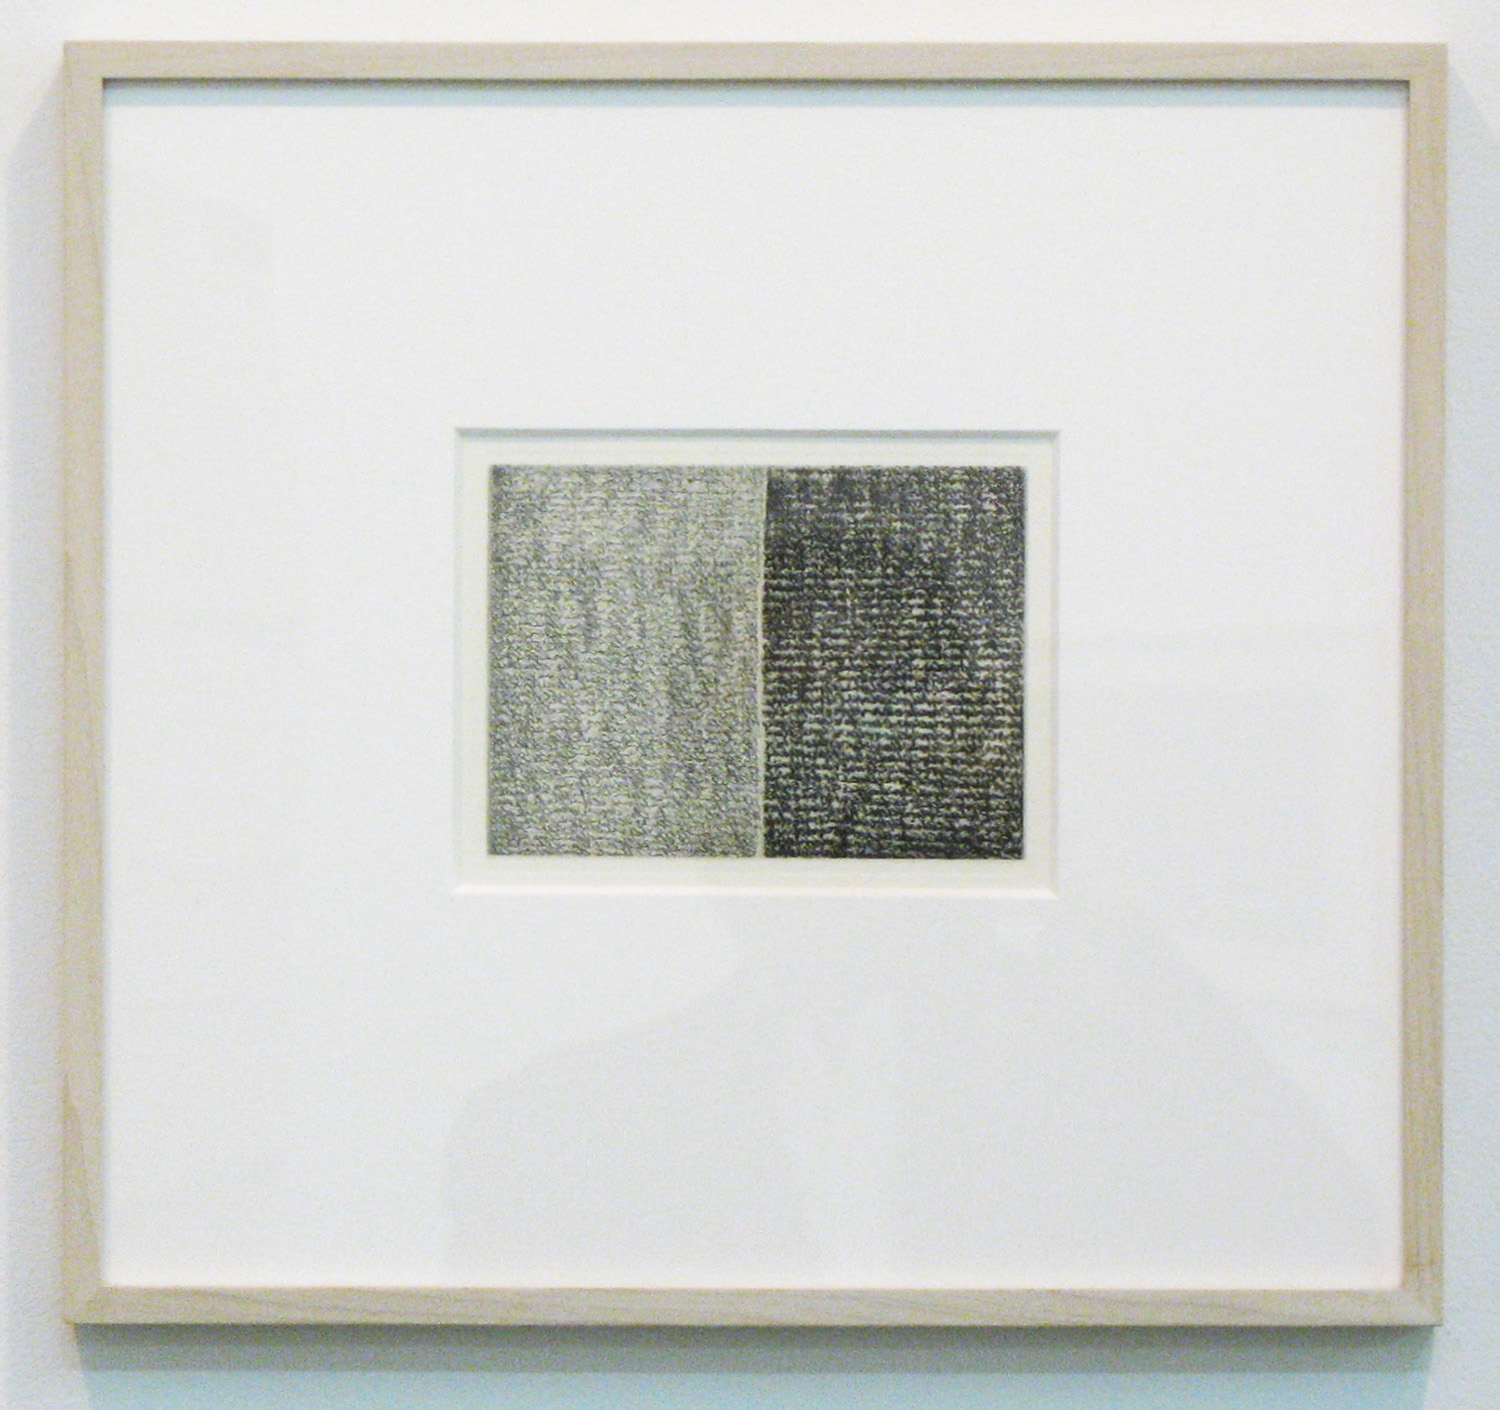 Theoria, Origin <br>etching on paper, 2008